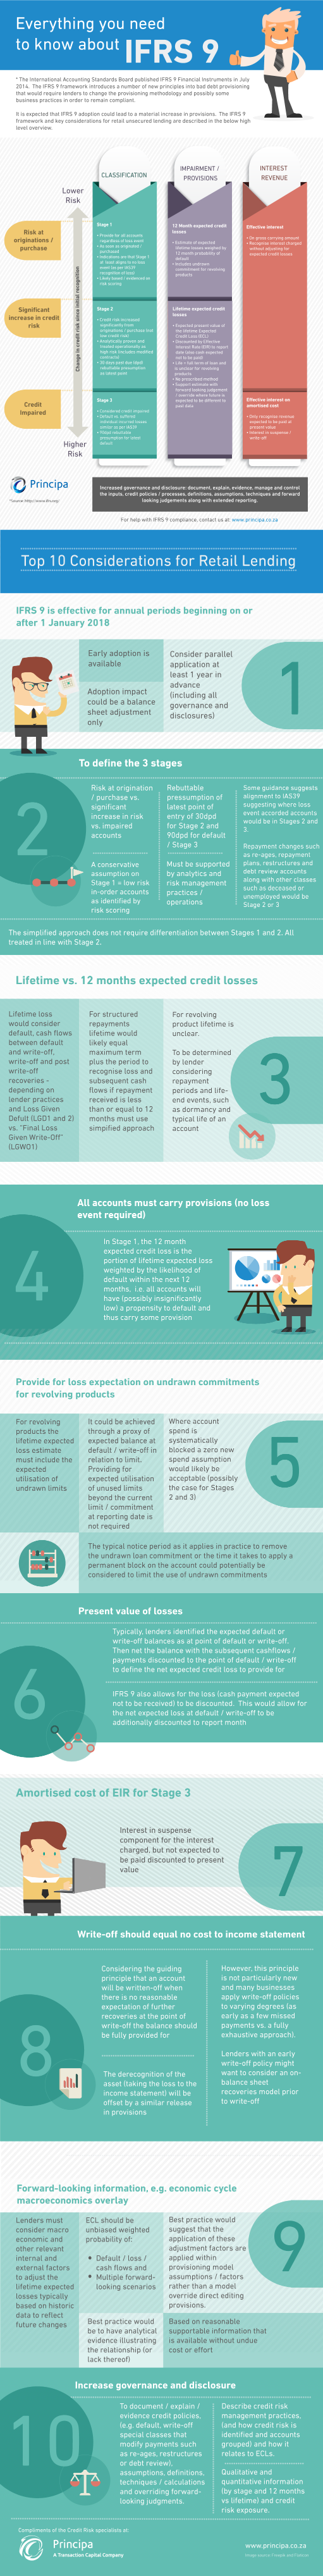 Auditing provisions - the auditing journey over time & how to prepare for the upcoming IFRS 9 audit infographic